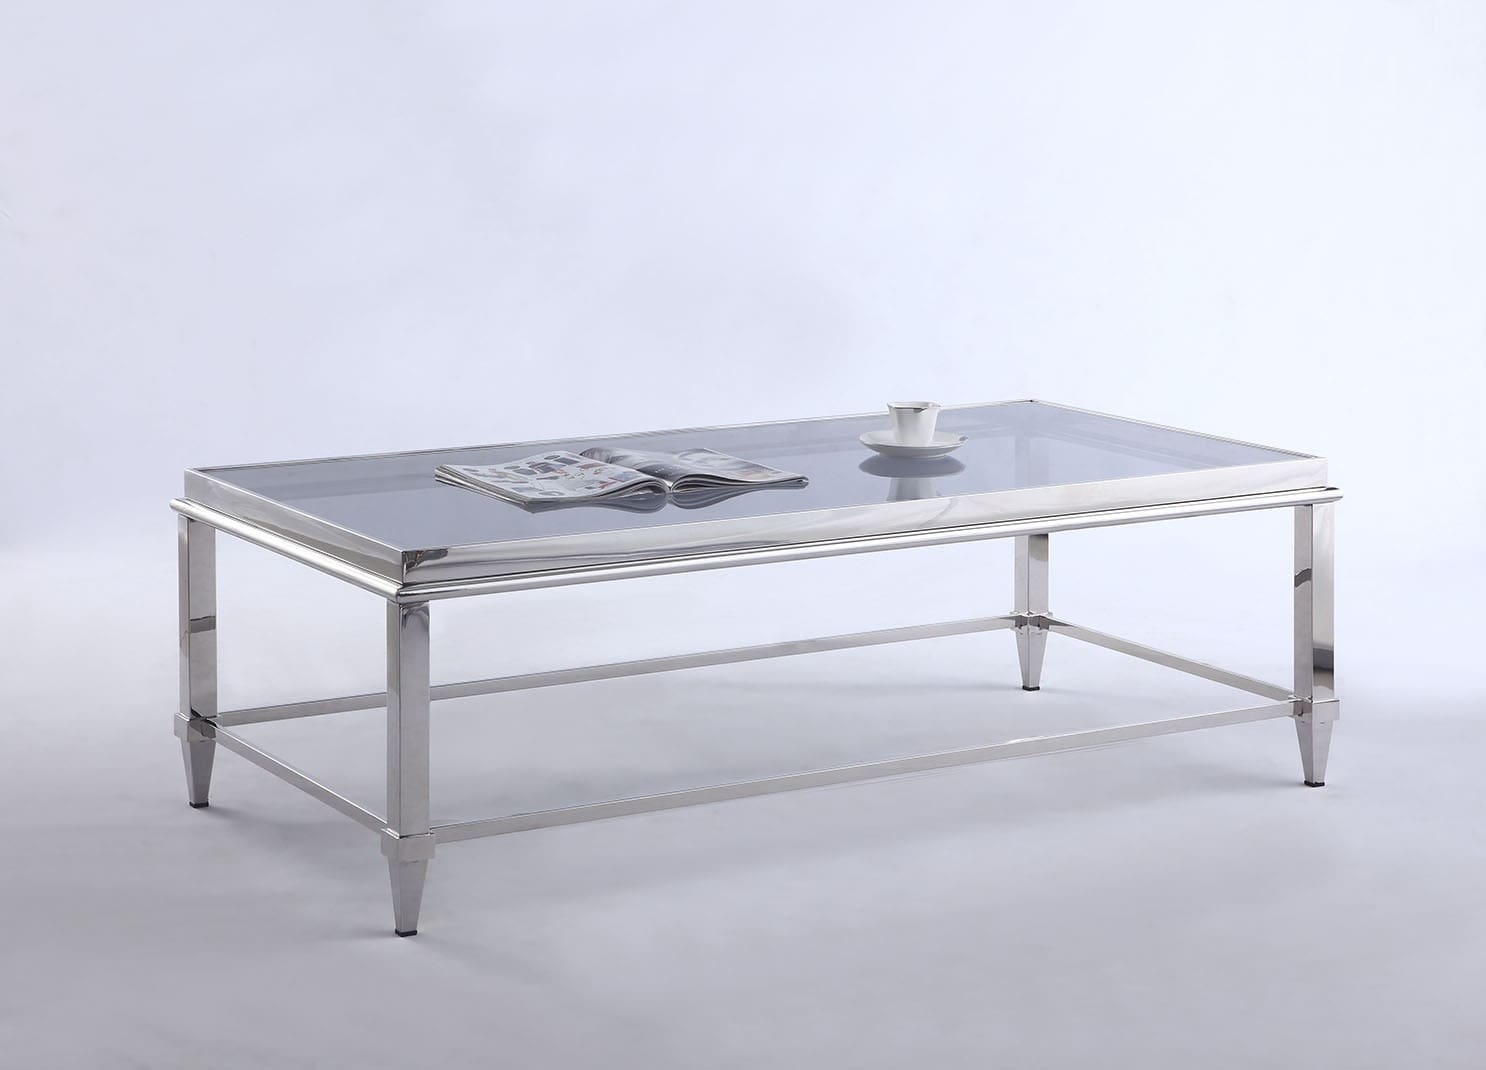 Polished Stainless Steel Rectangular Coffee Table With Glass Top